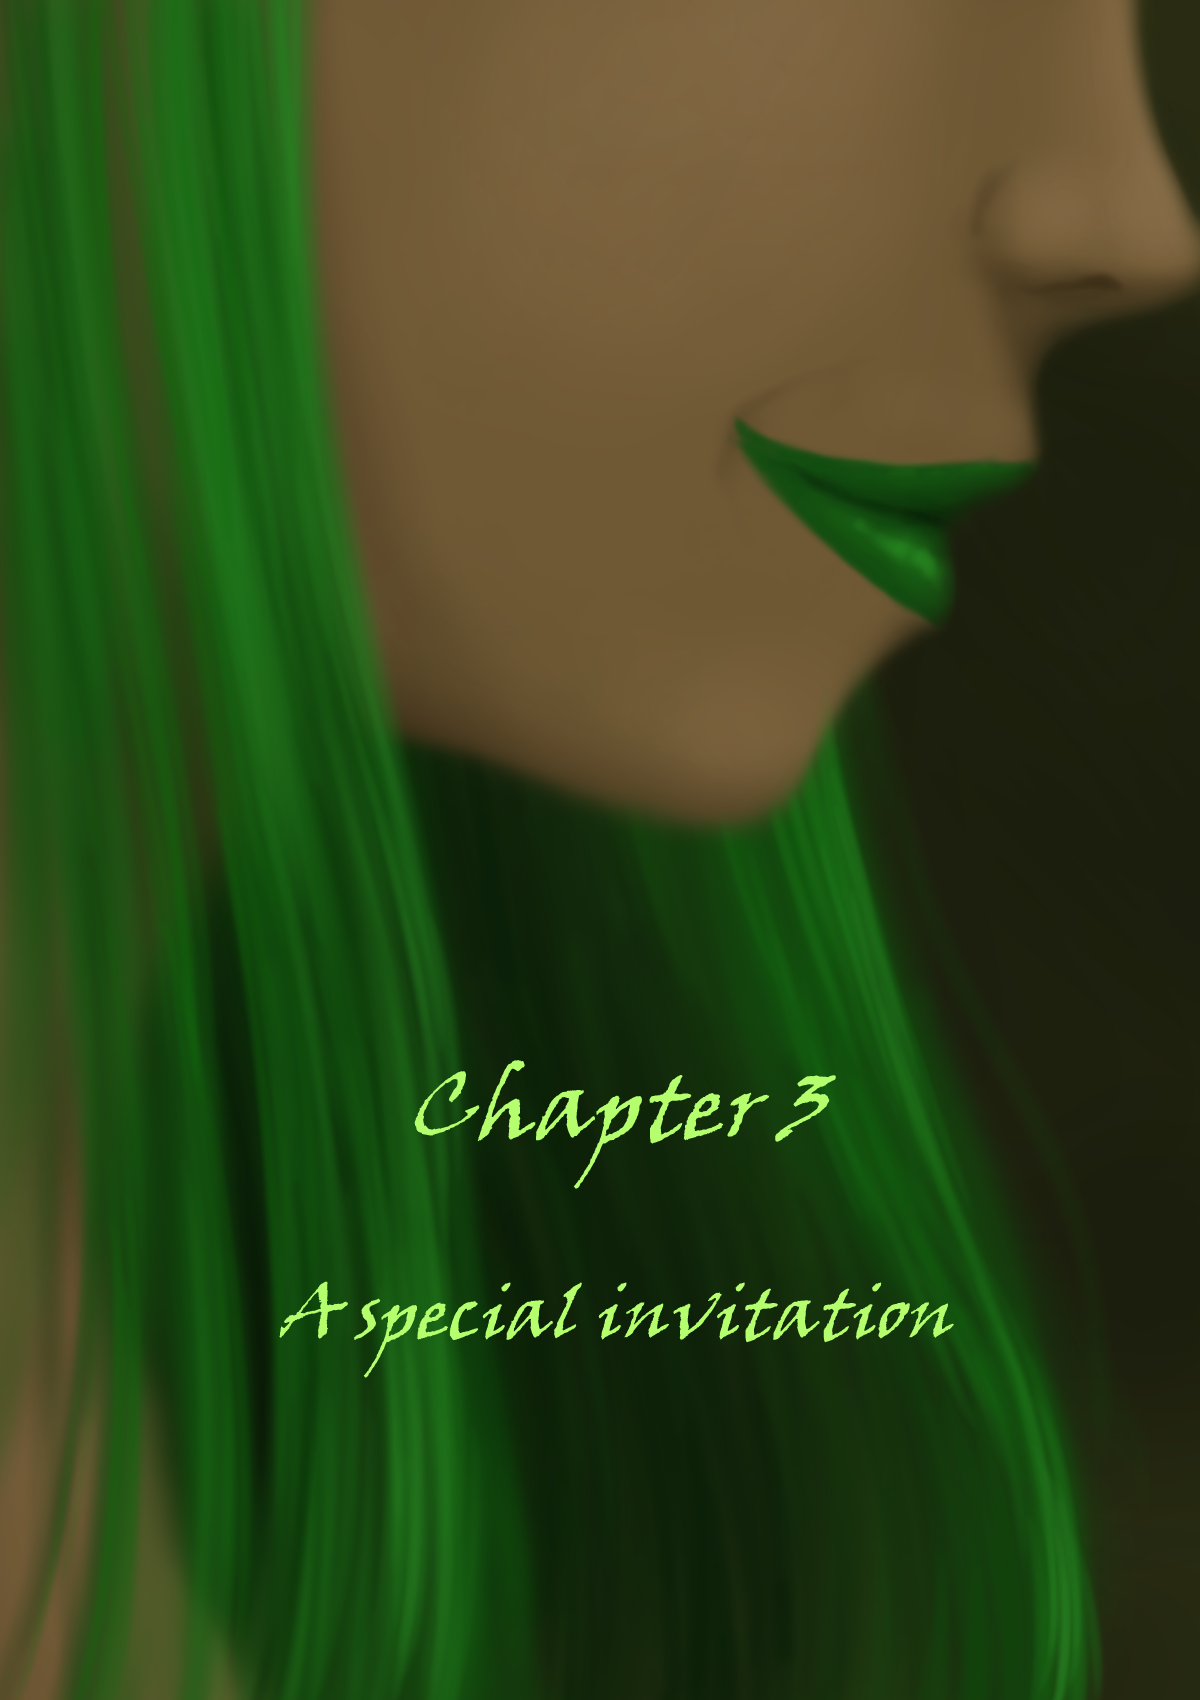 Chapter 3 - A special invitation